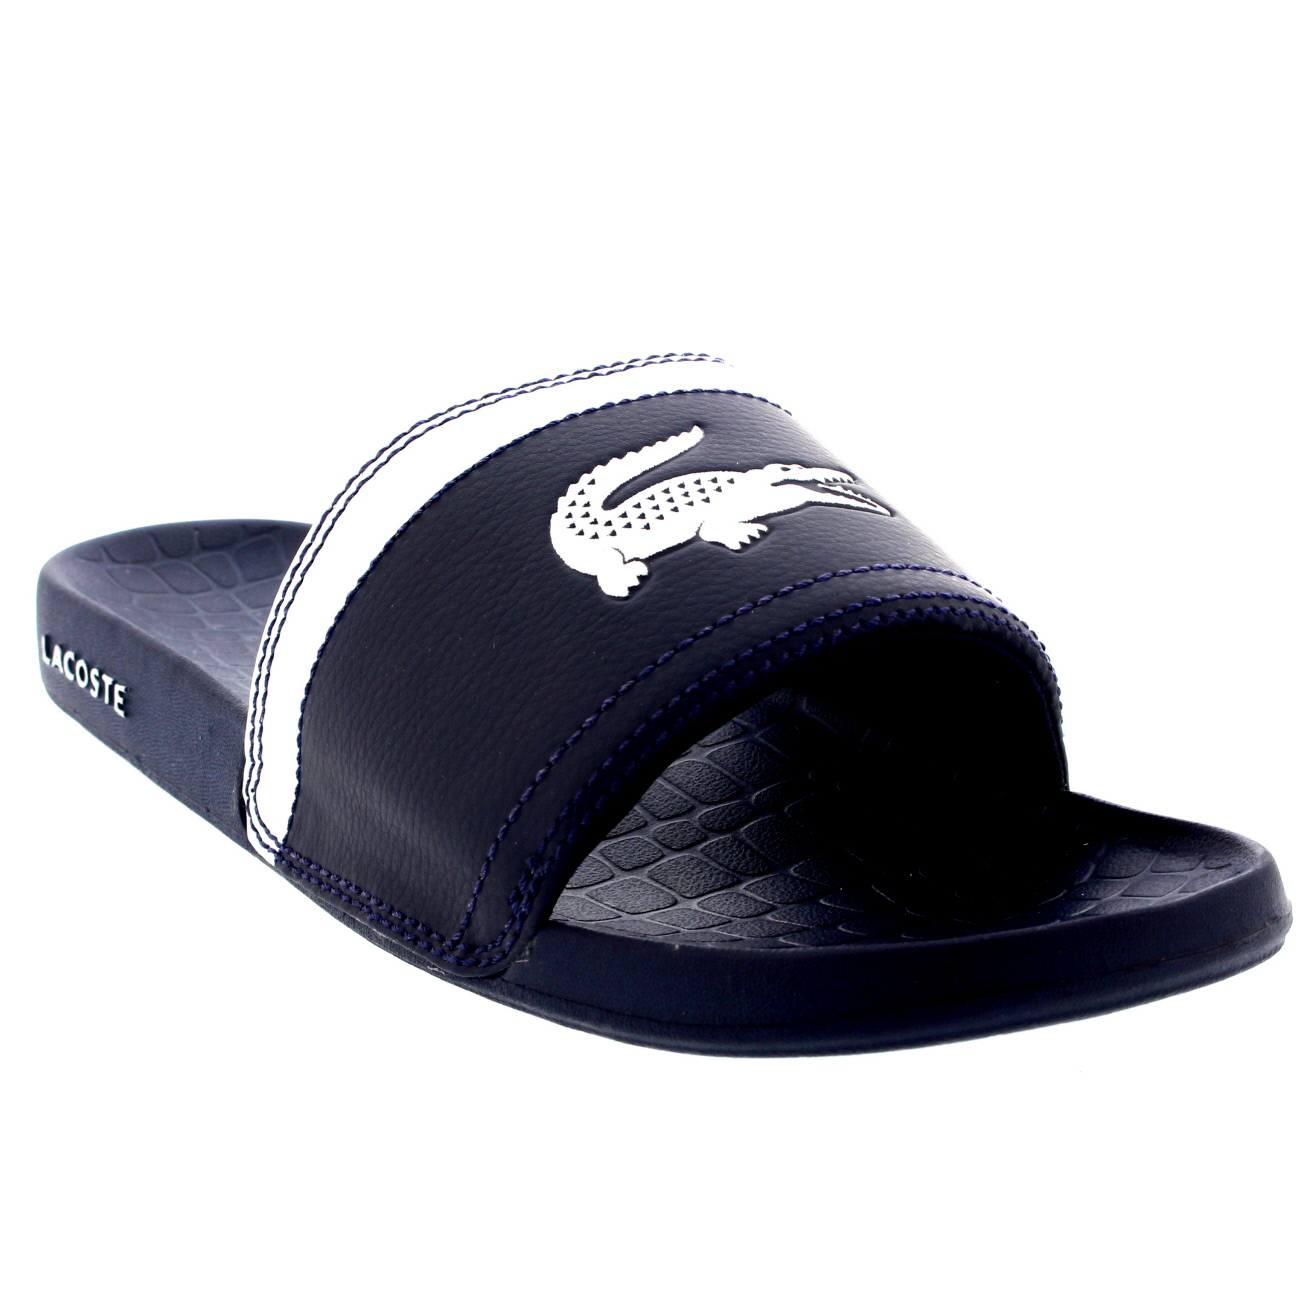 e836bd01d Mens Lacoste Fraiser Slides Beach Synthetic Casual Holiday Pool ...